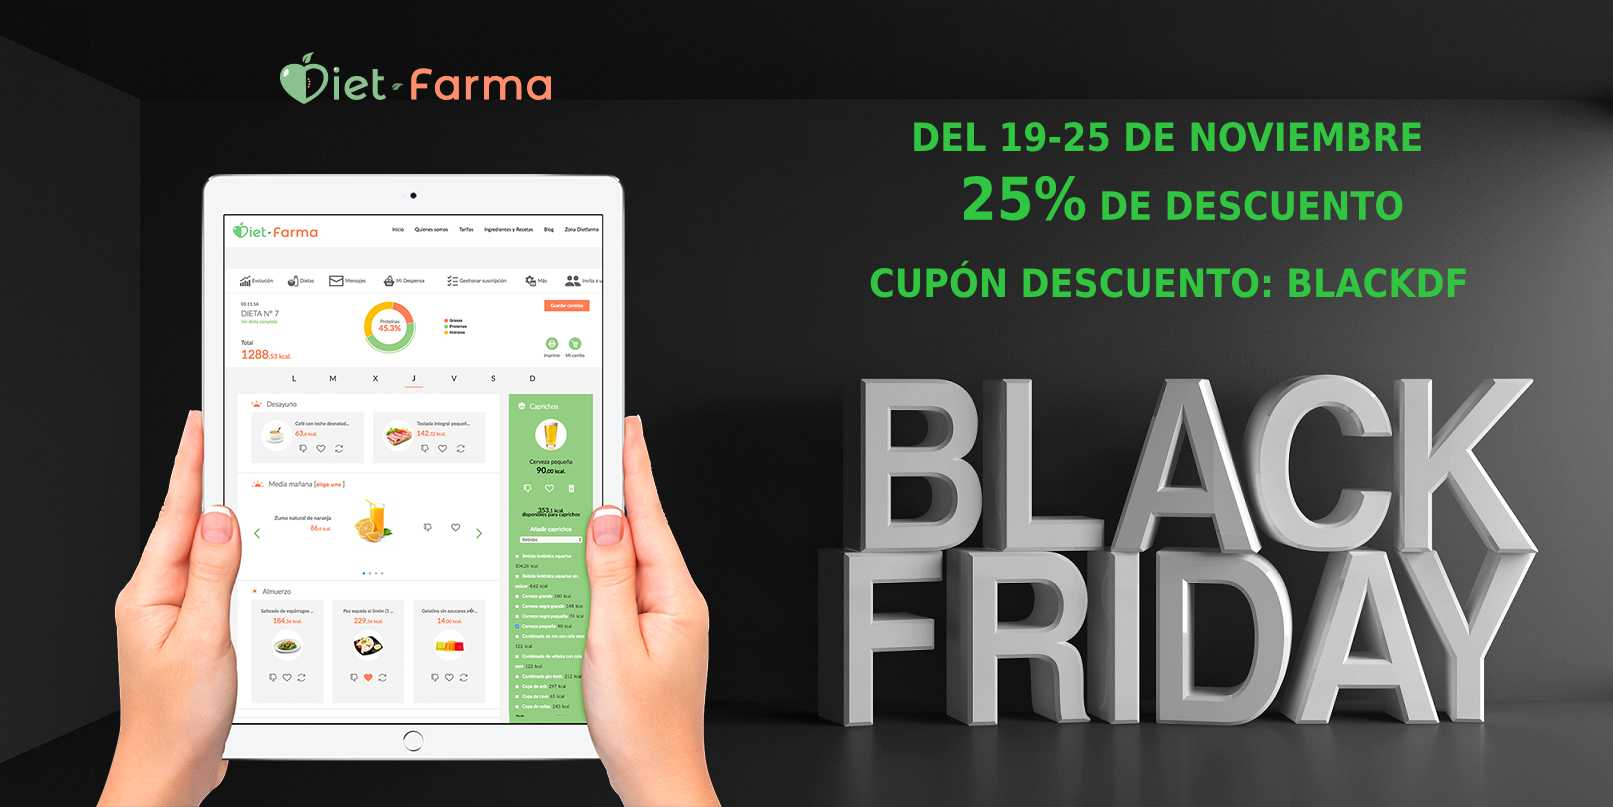 black friday en dietfarma